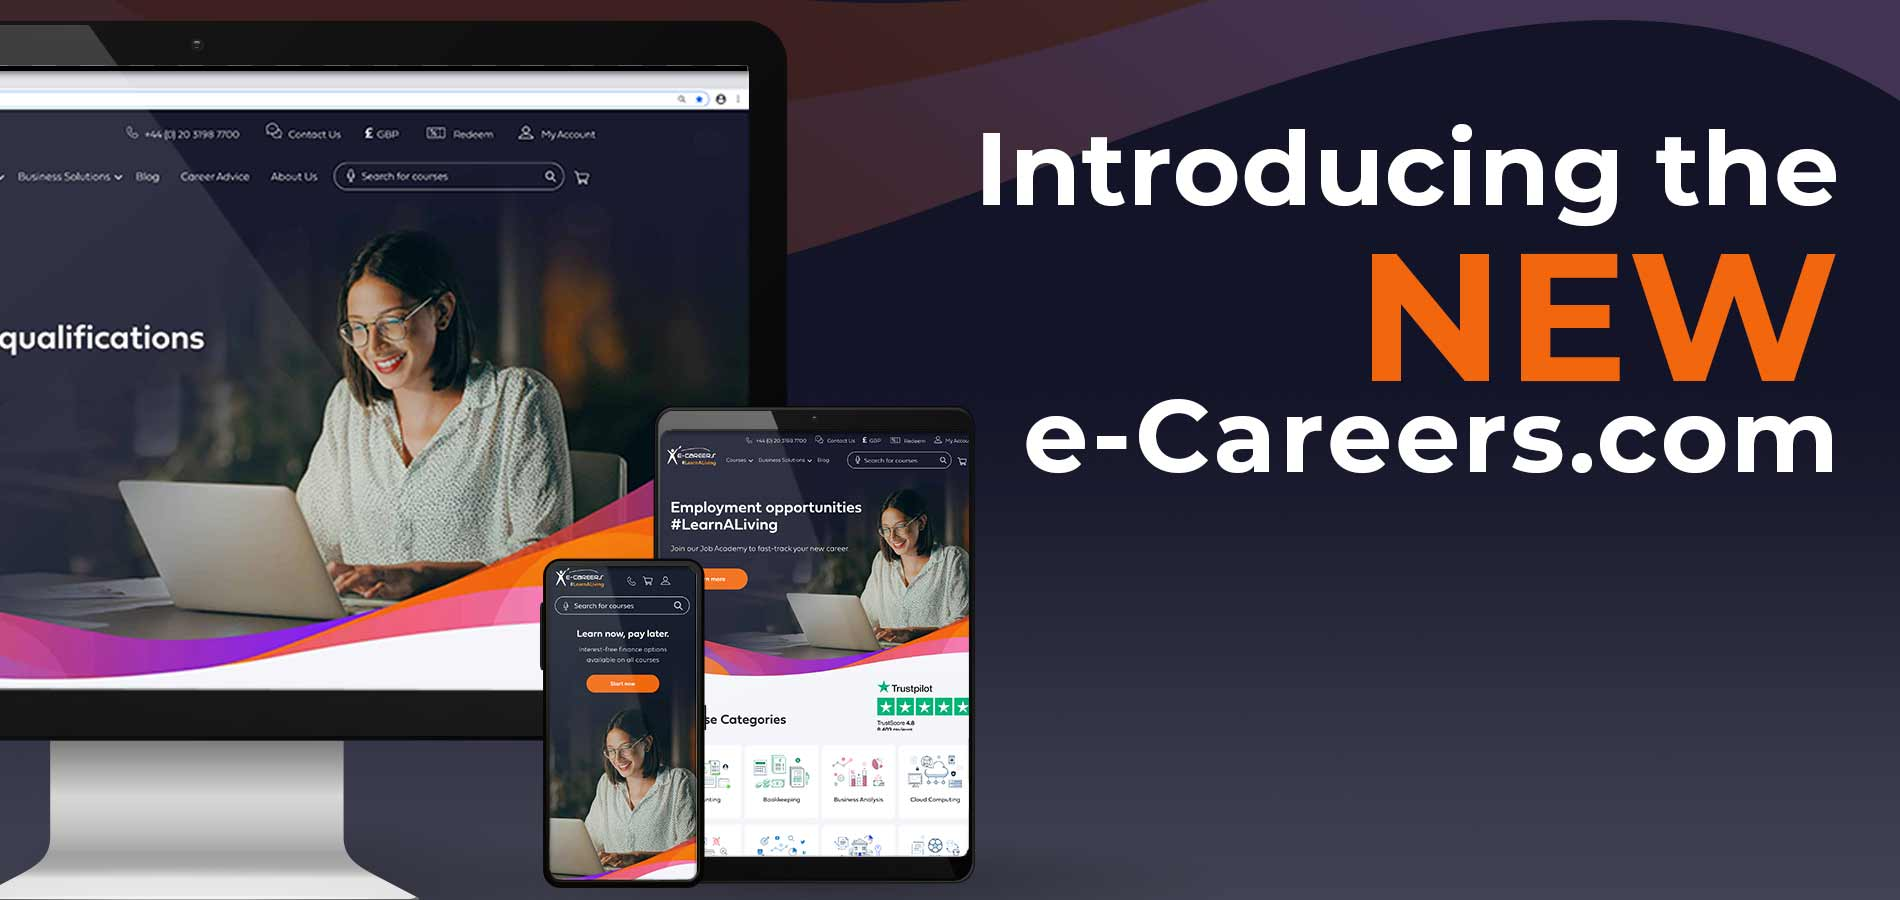 Introducing the launch of our new e-Careers website